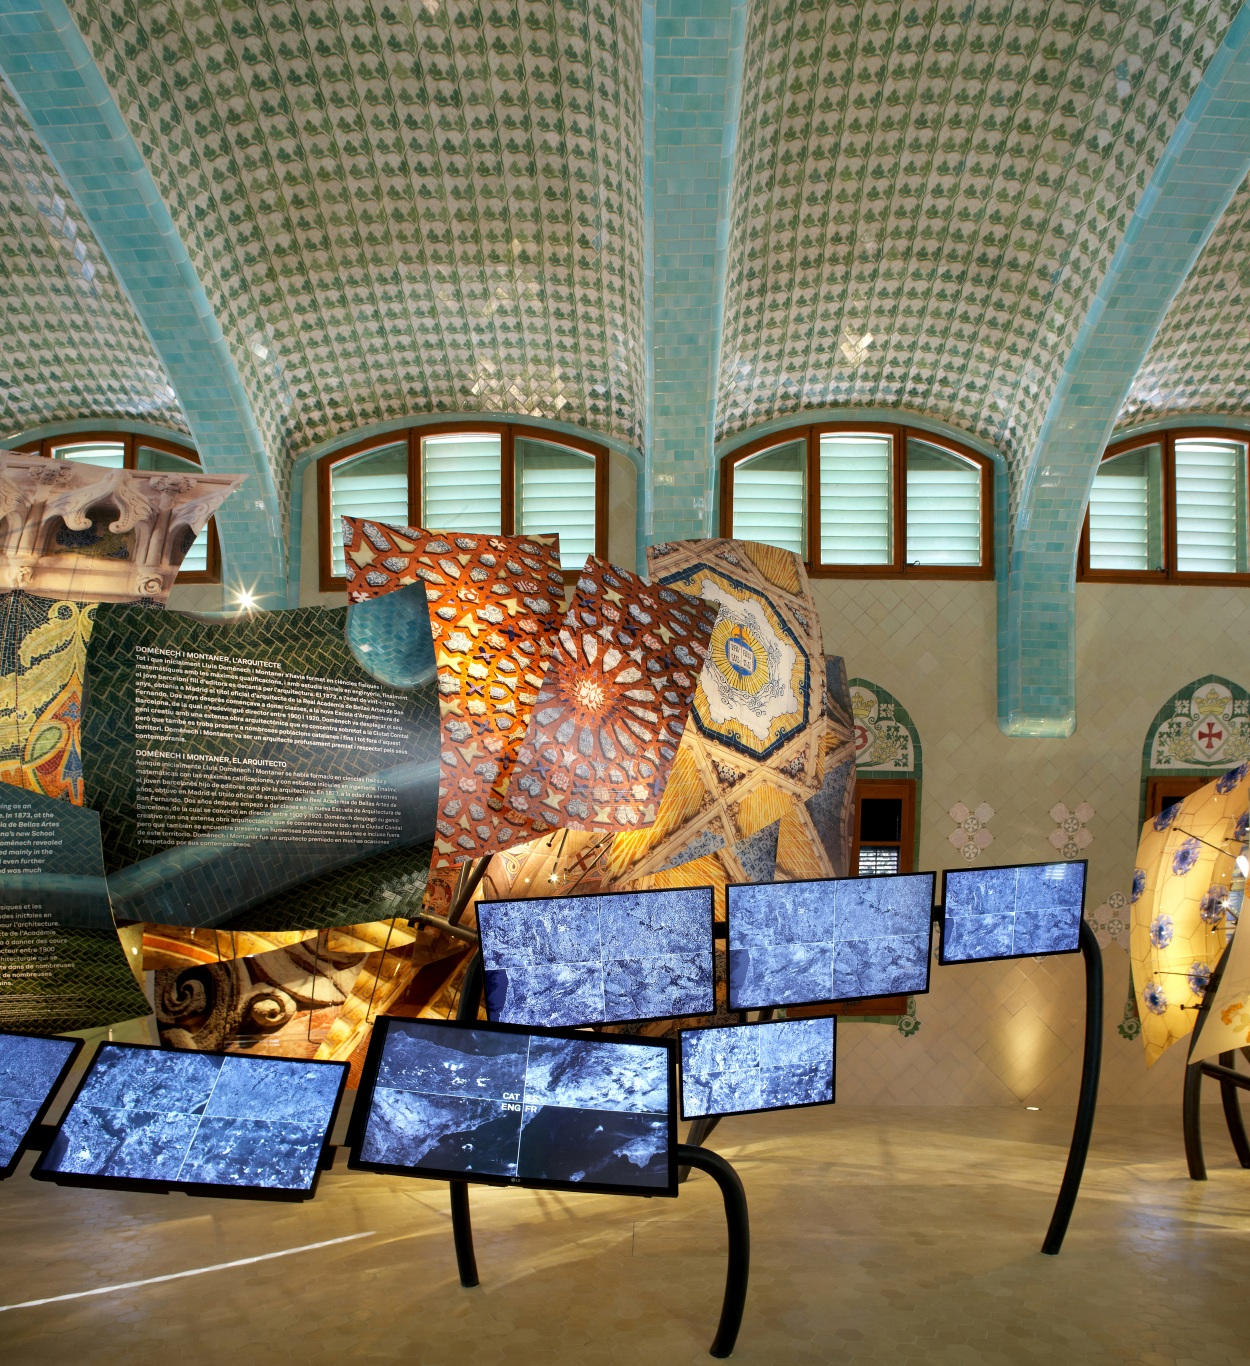 Hospital of the Santa Creu i Sant Pau. Illuminated dragon made of architectonic elements by Domènech i Montaner. Electronic interactive screens.